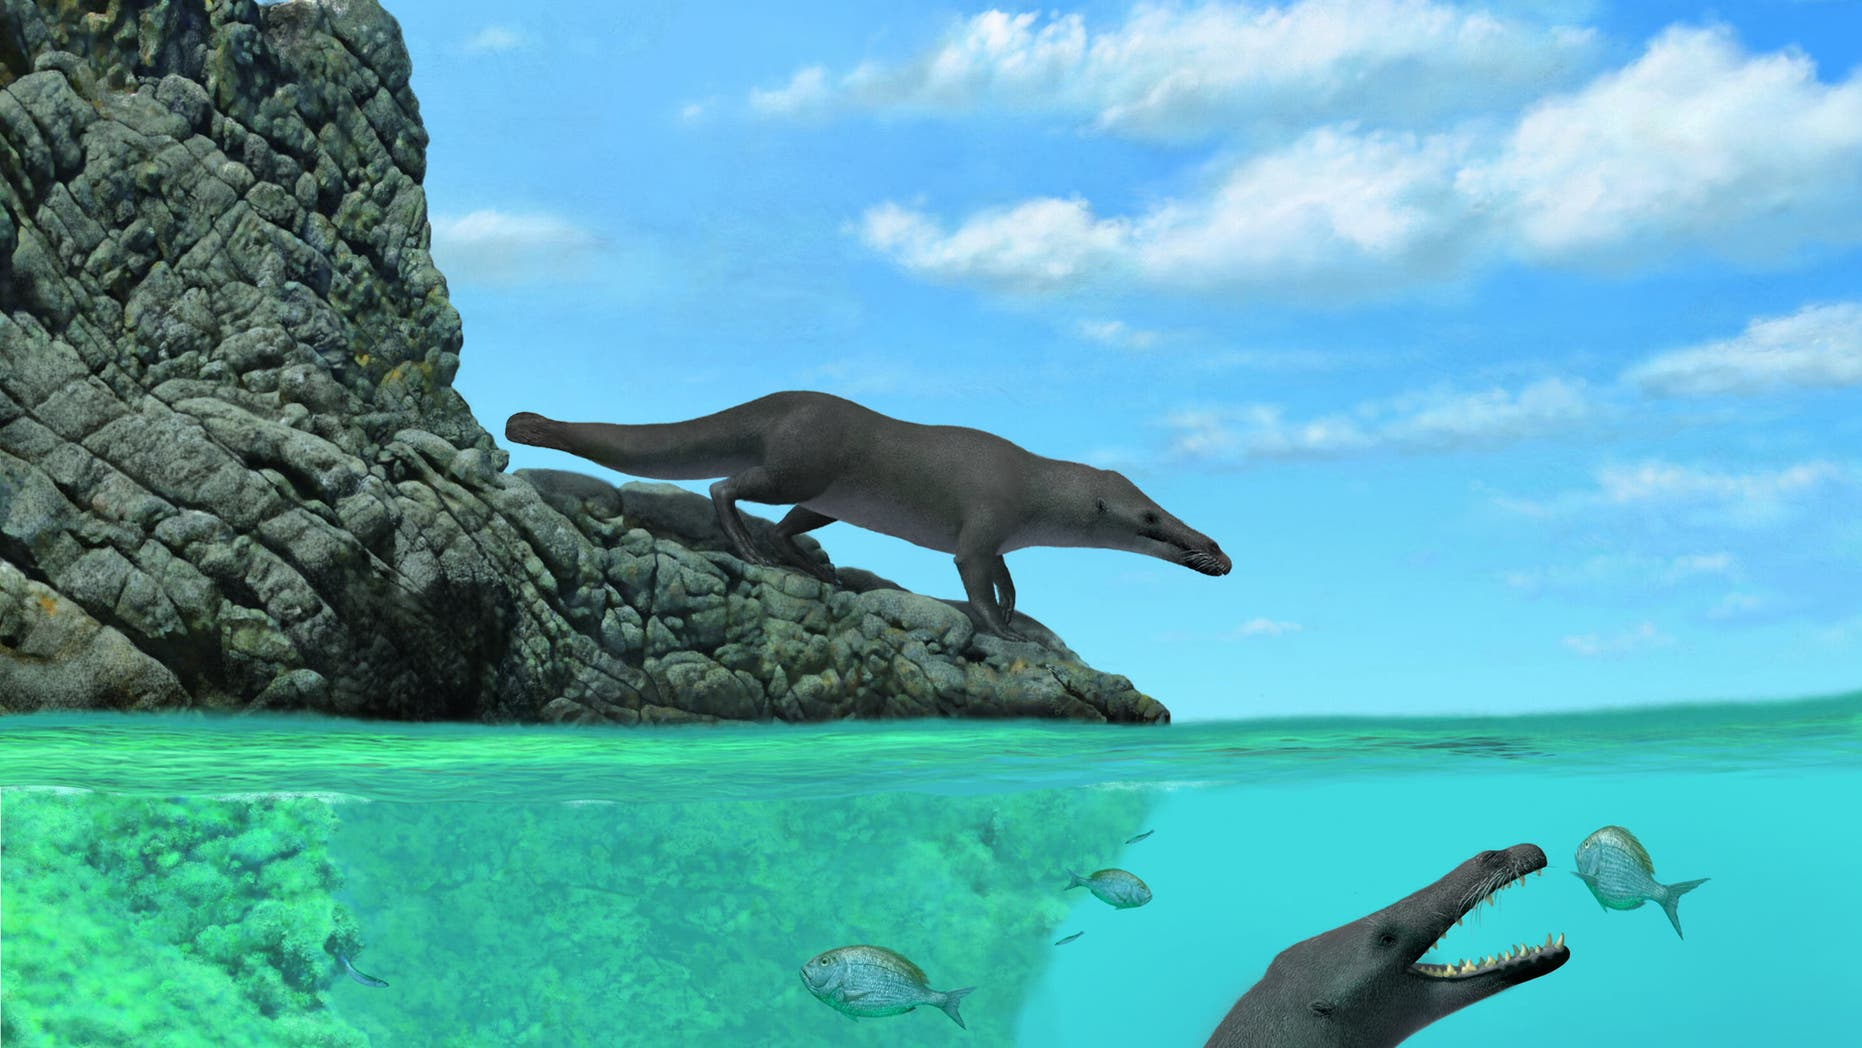 Fossilized Remains of Ancient 4-Legged Whale Discovered in Peru